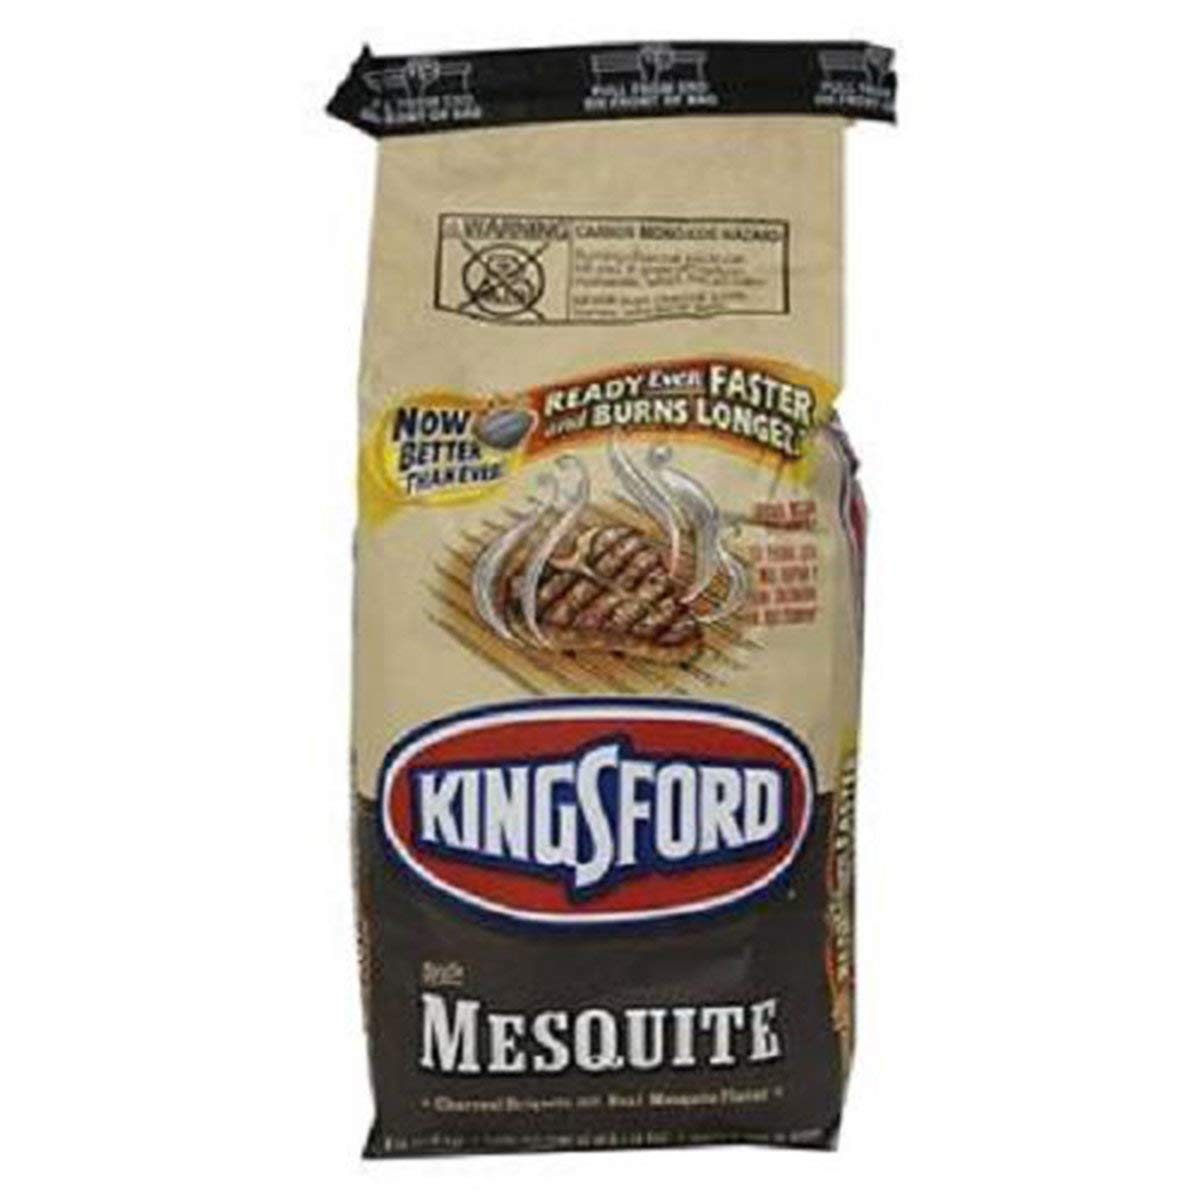 Product Of Kingsford, Mesquite , Count 6 (7.3Lb) - Charcoal / Starter & Fluid / Grab Varieties & Flavors